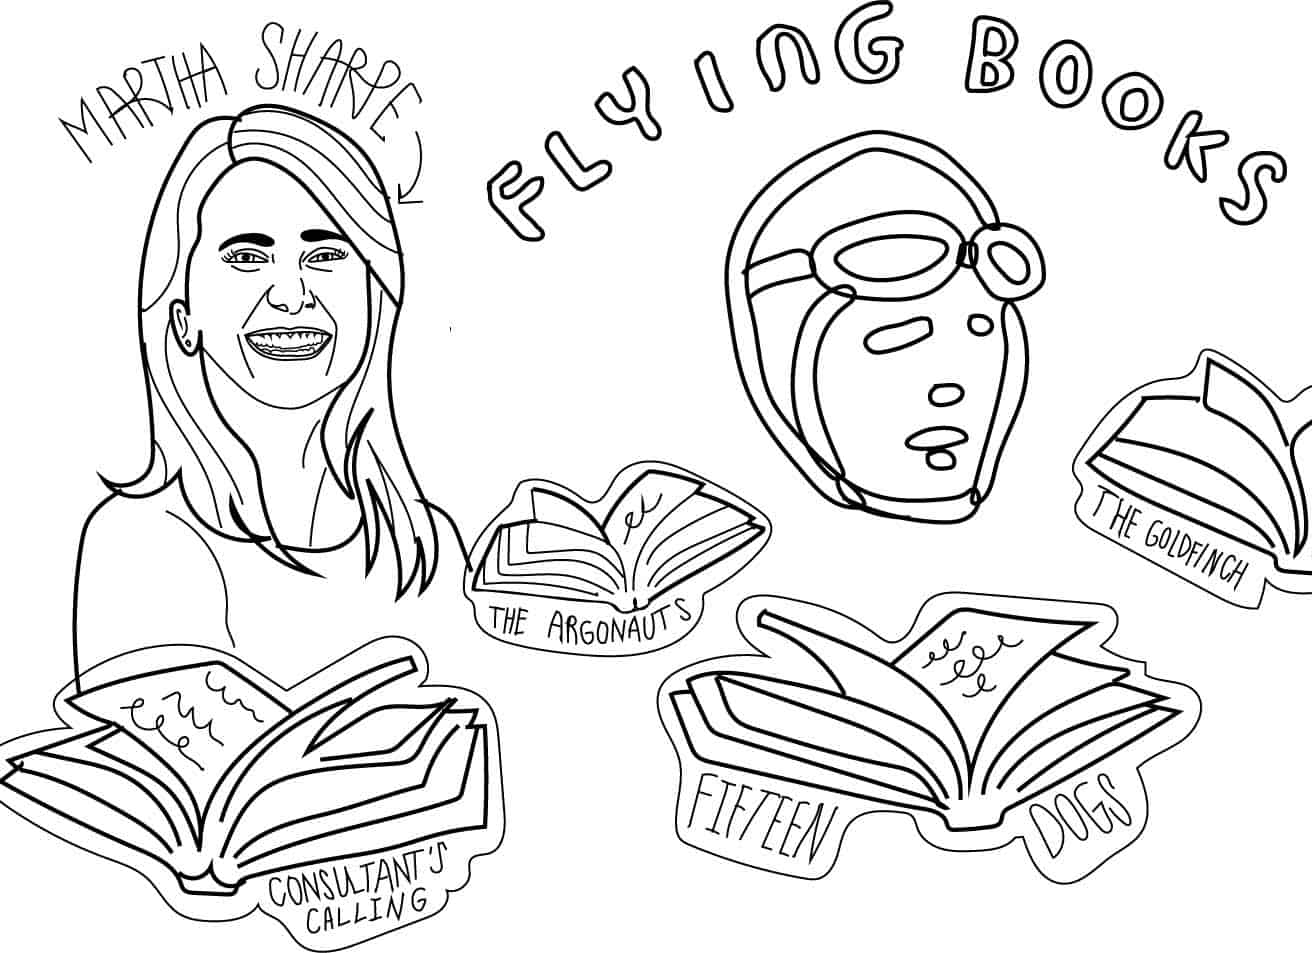 THE MARVELOUS MARTHA SHARPE AND HER FLYING BOOKS